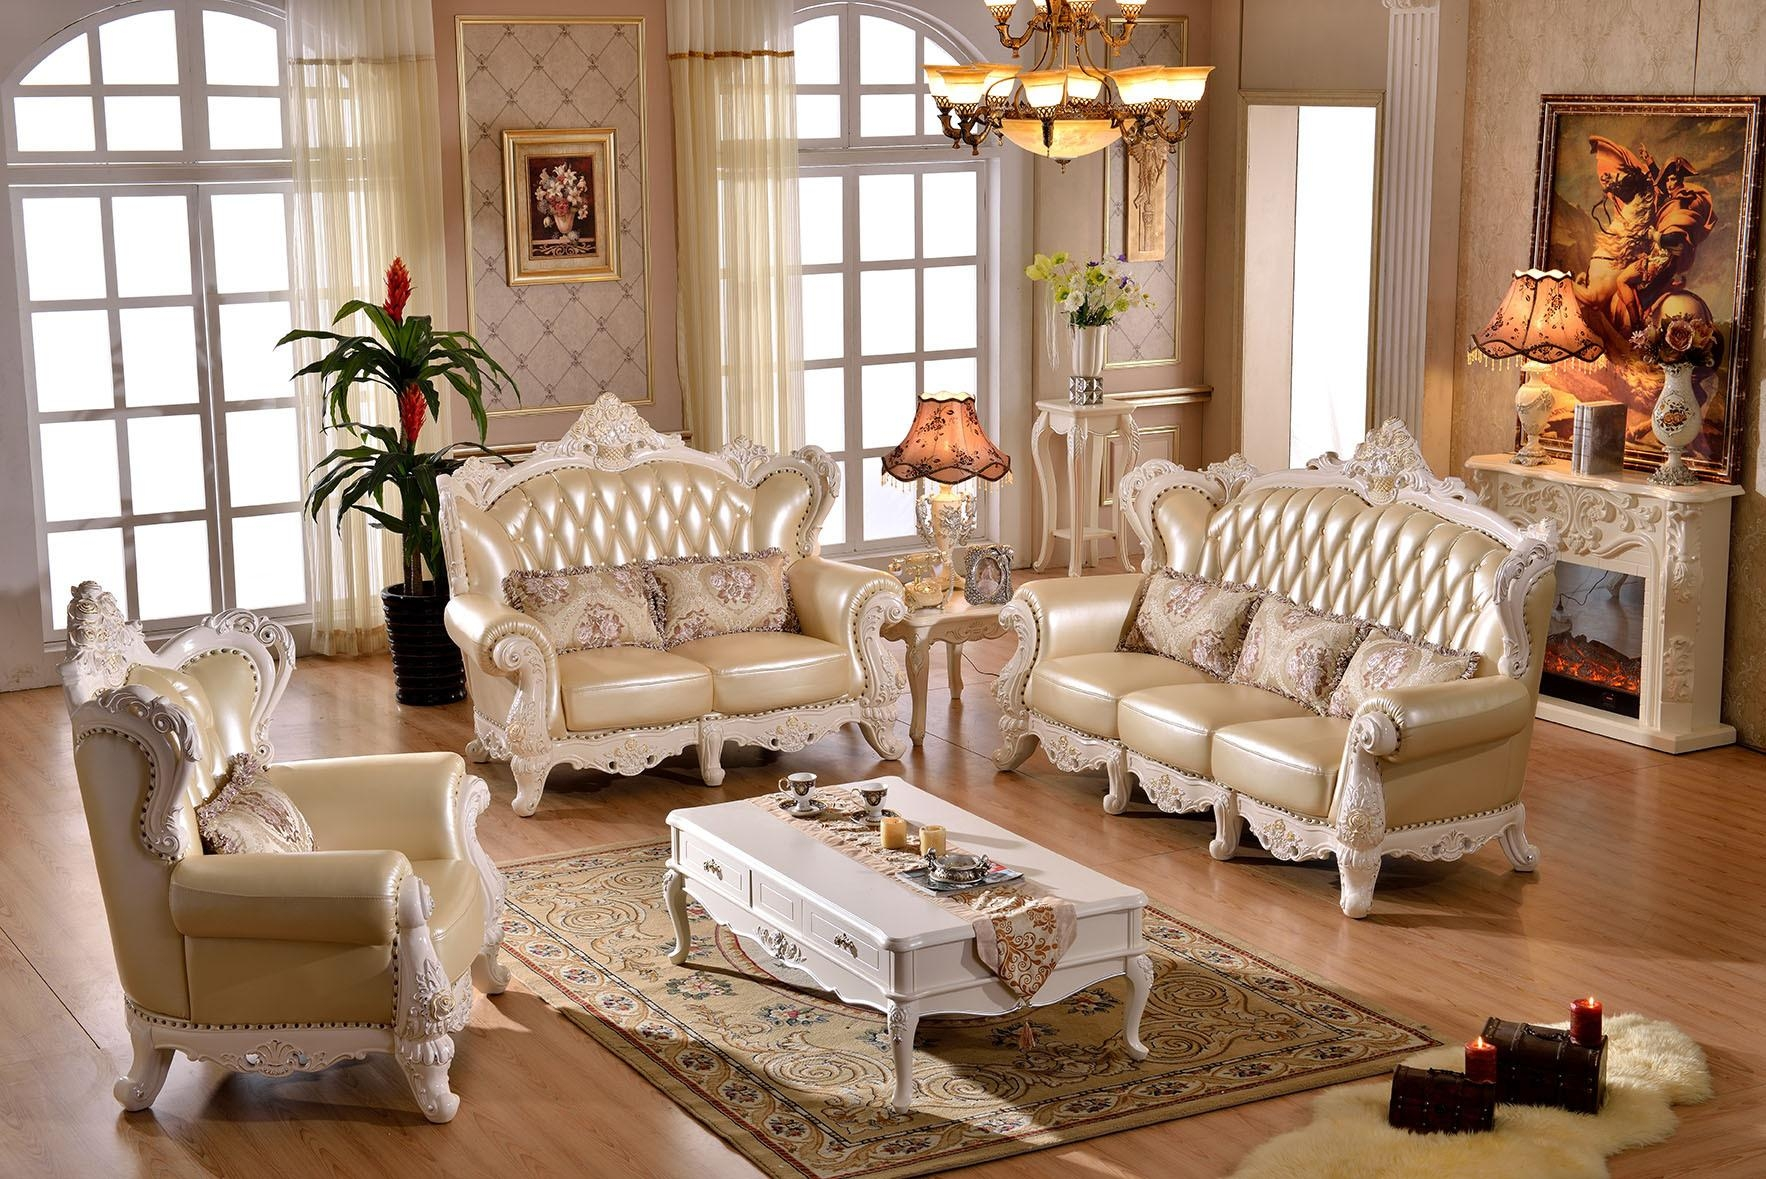 Style Sofa Large Living Room Leather Sofa Combination Solid Wood Throughout European Leather Sofas (Image 17 of 21)